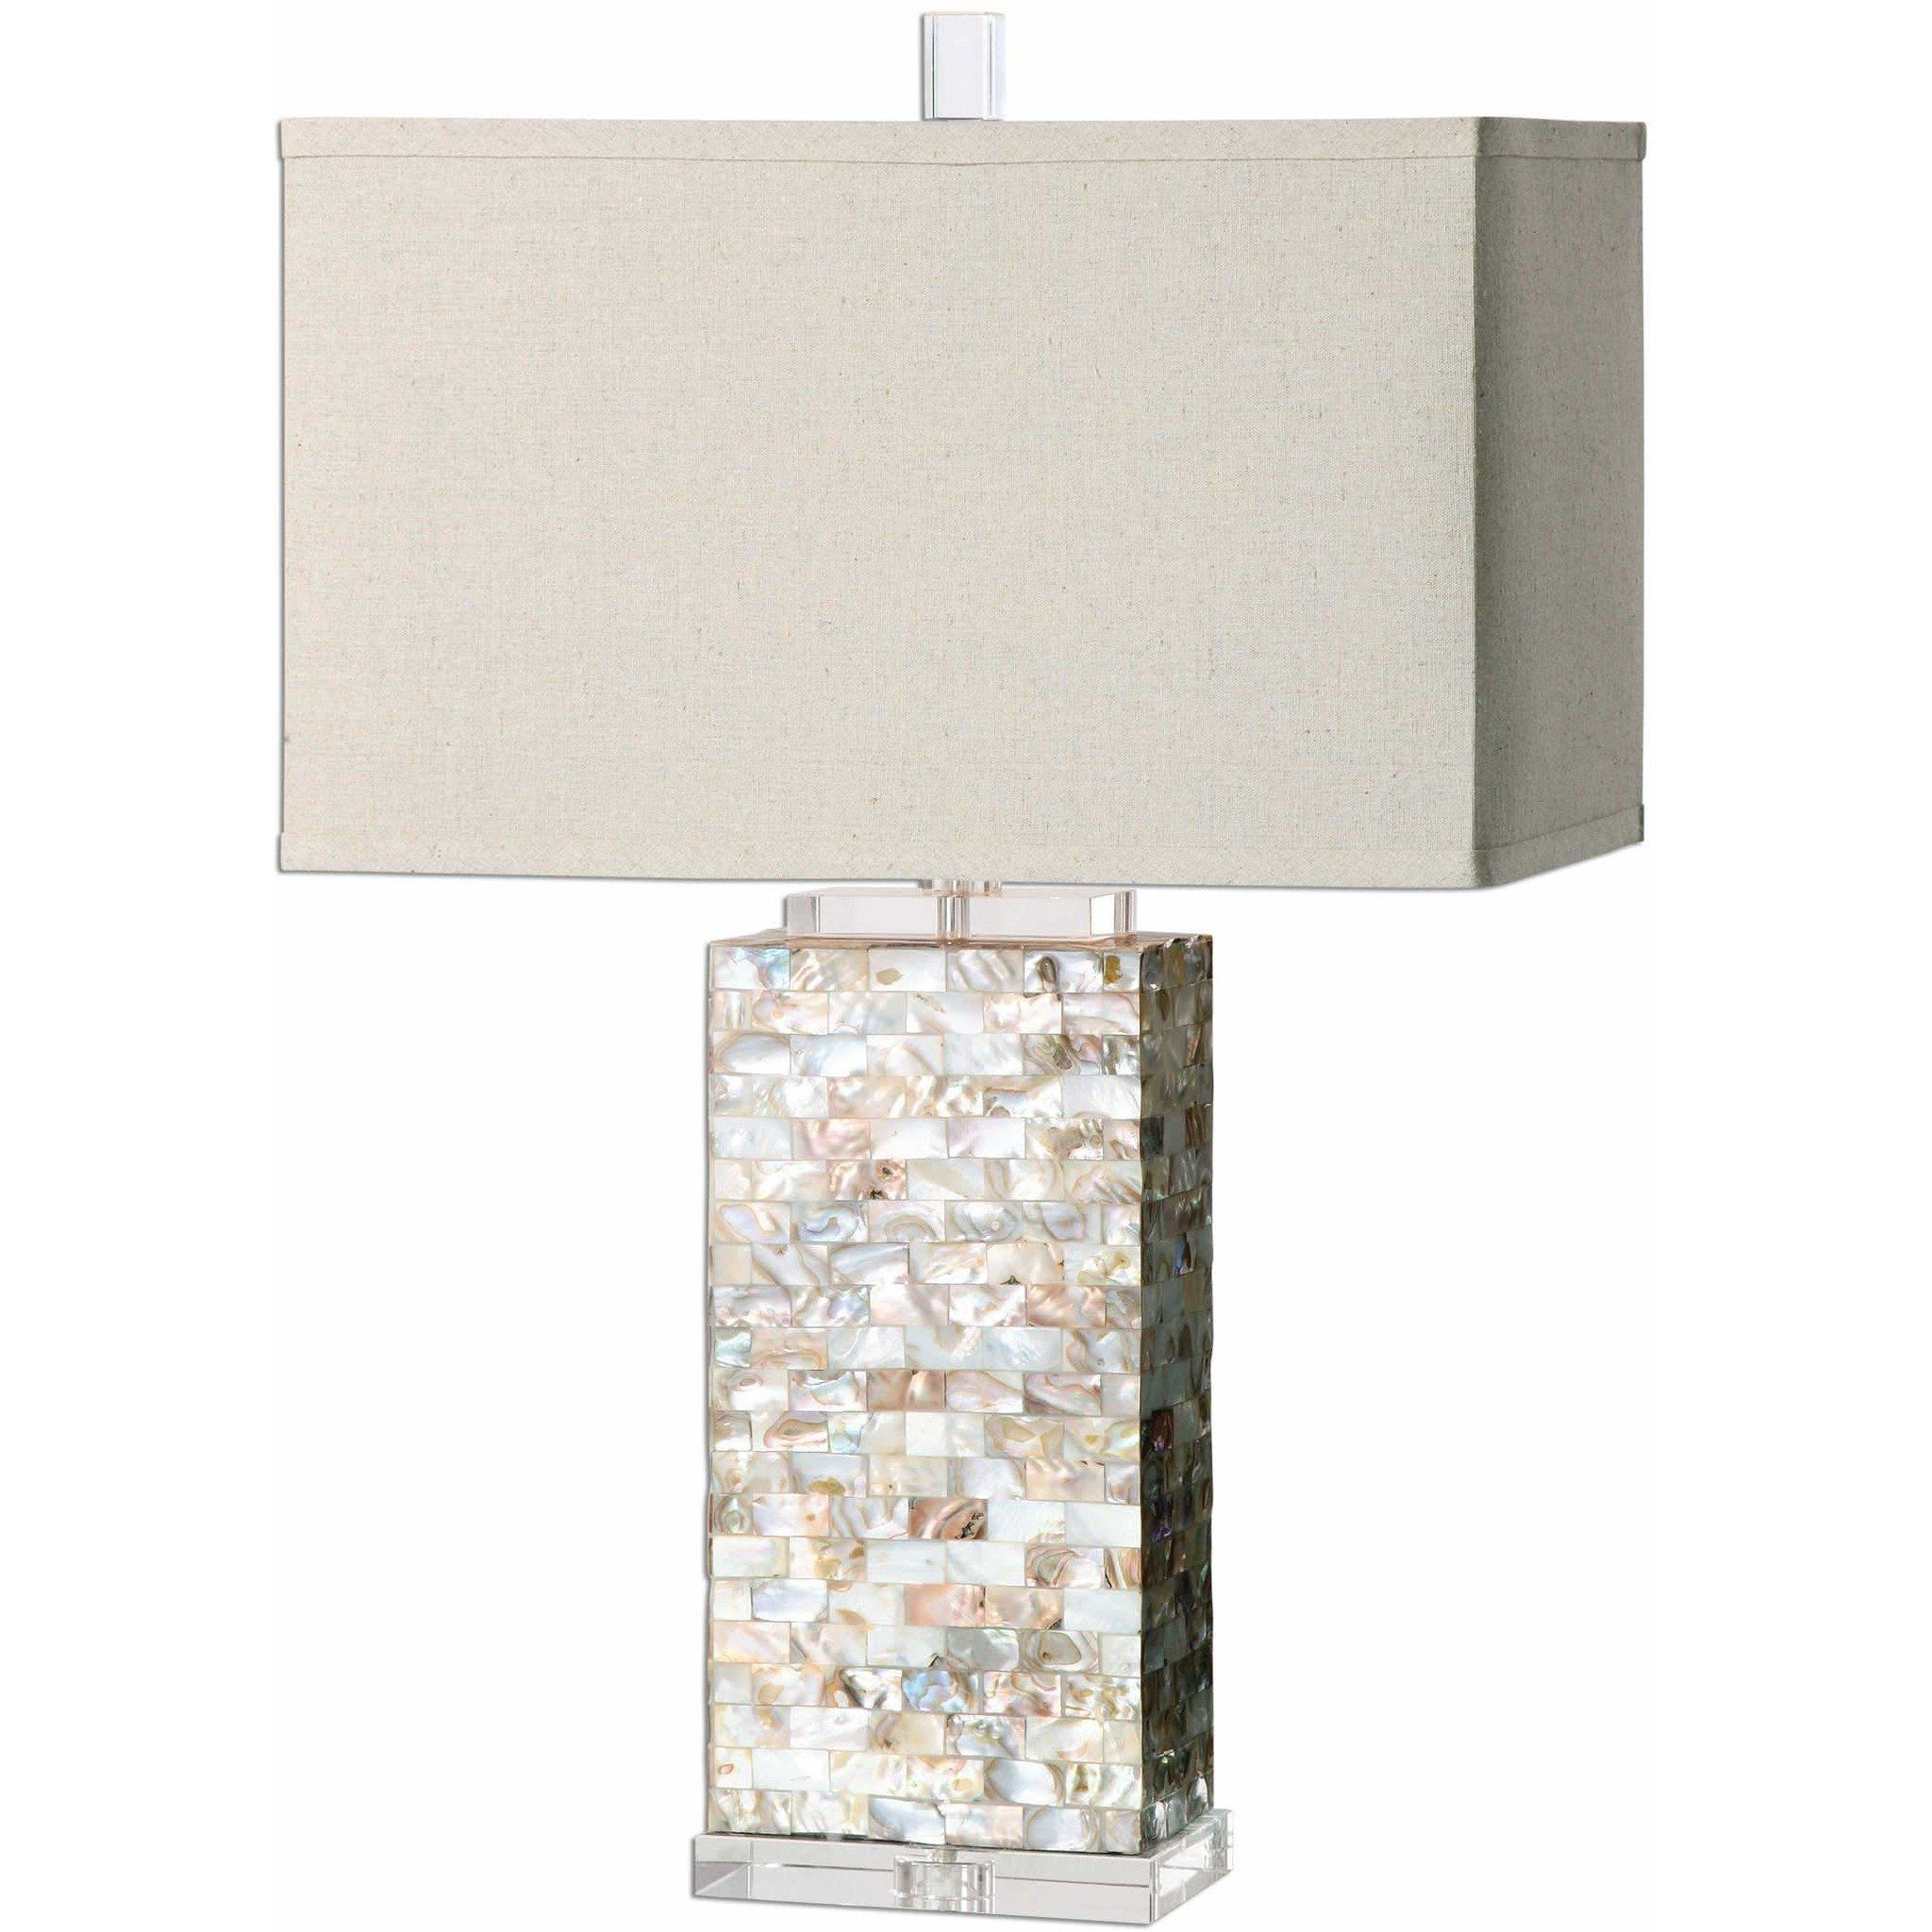 Uttermost 27026 1 aden capiz shell table lamp products uttermost 27026 1 aden capiz shell table lamp aloadofball Images